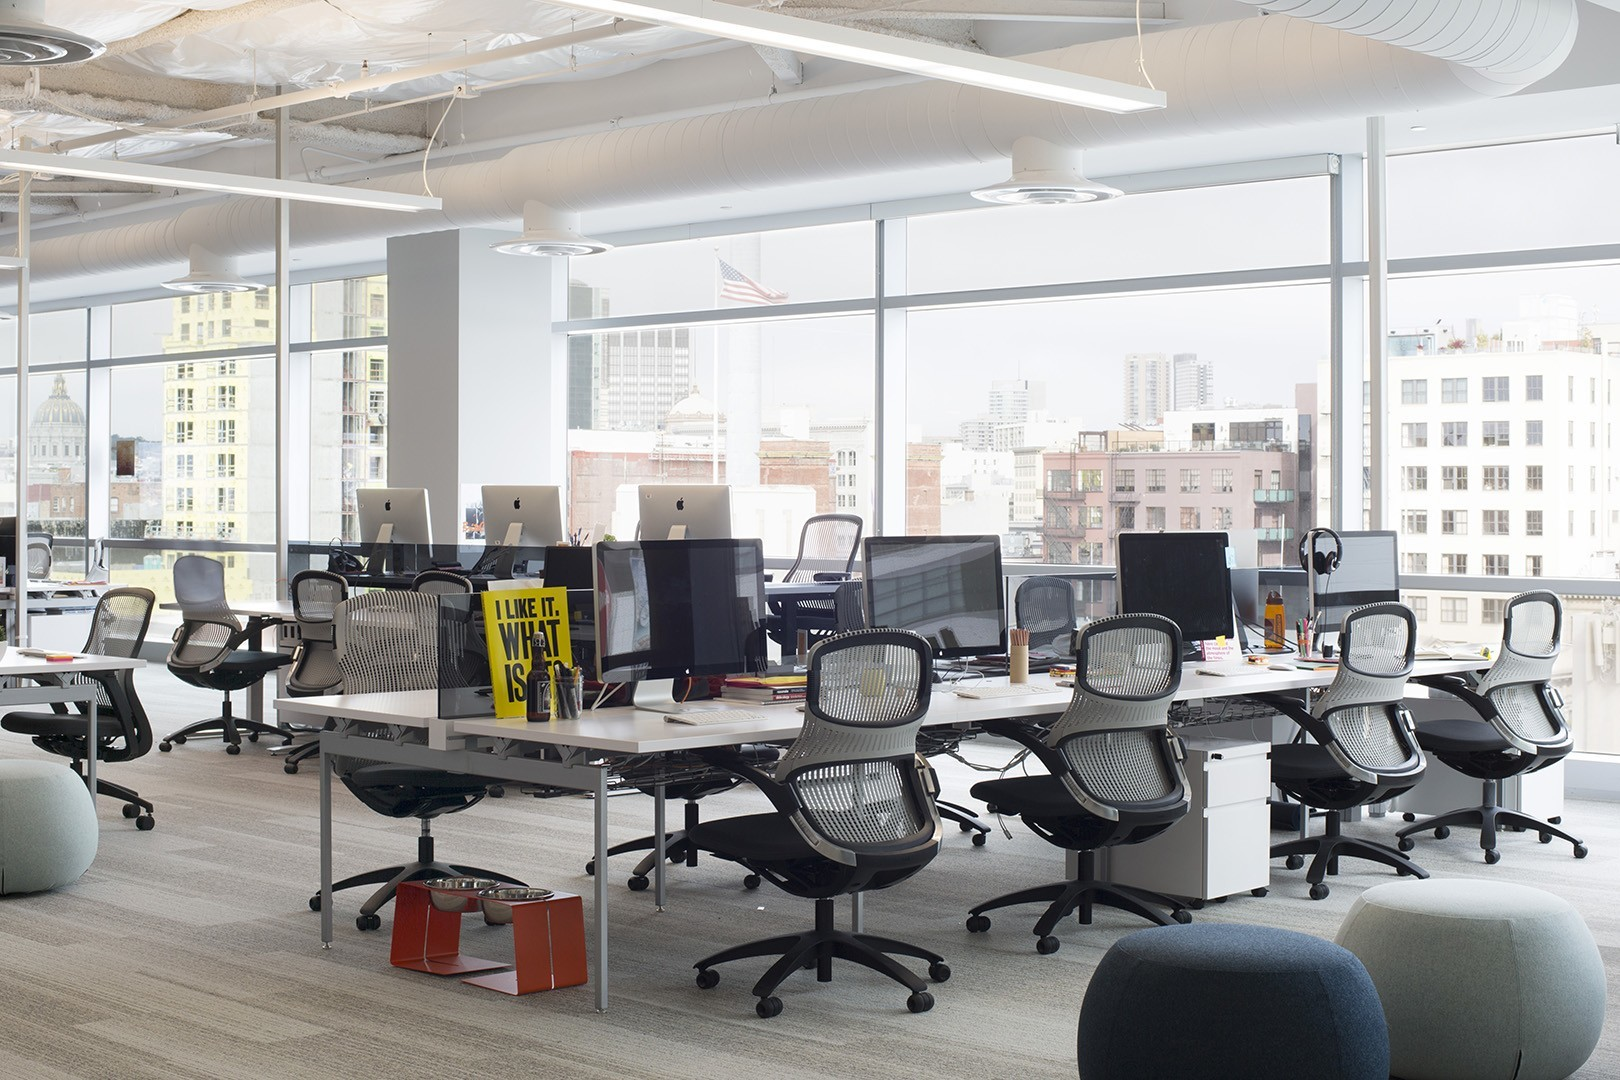 Another Look Inside Eventbrite's New San Francisco Headquarters